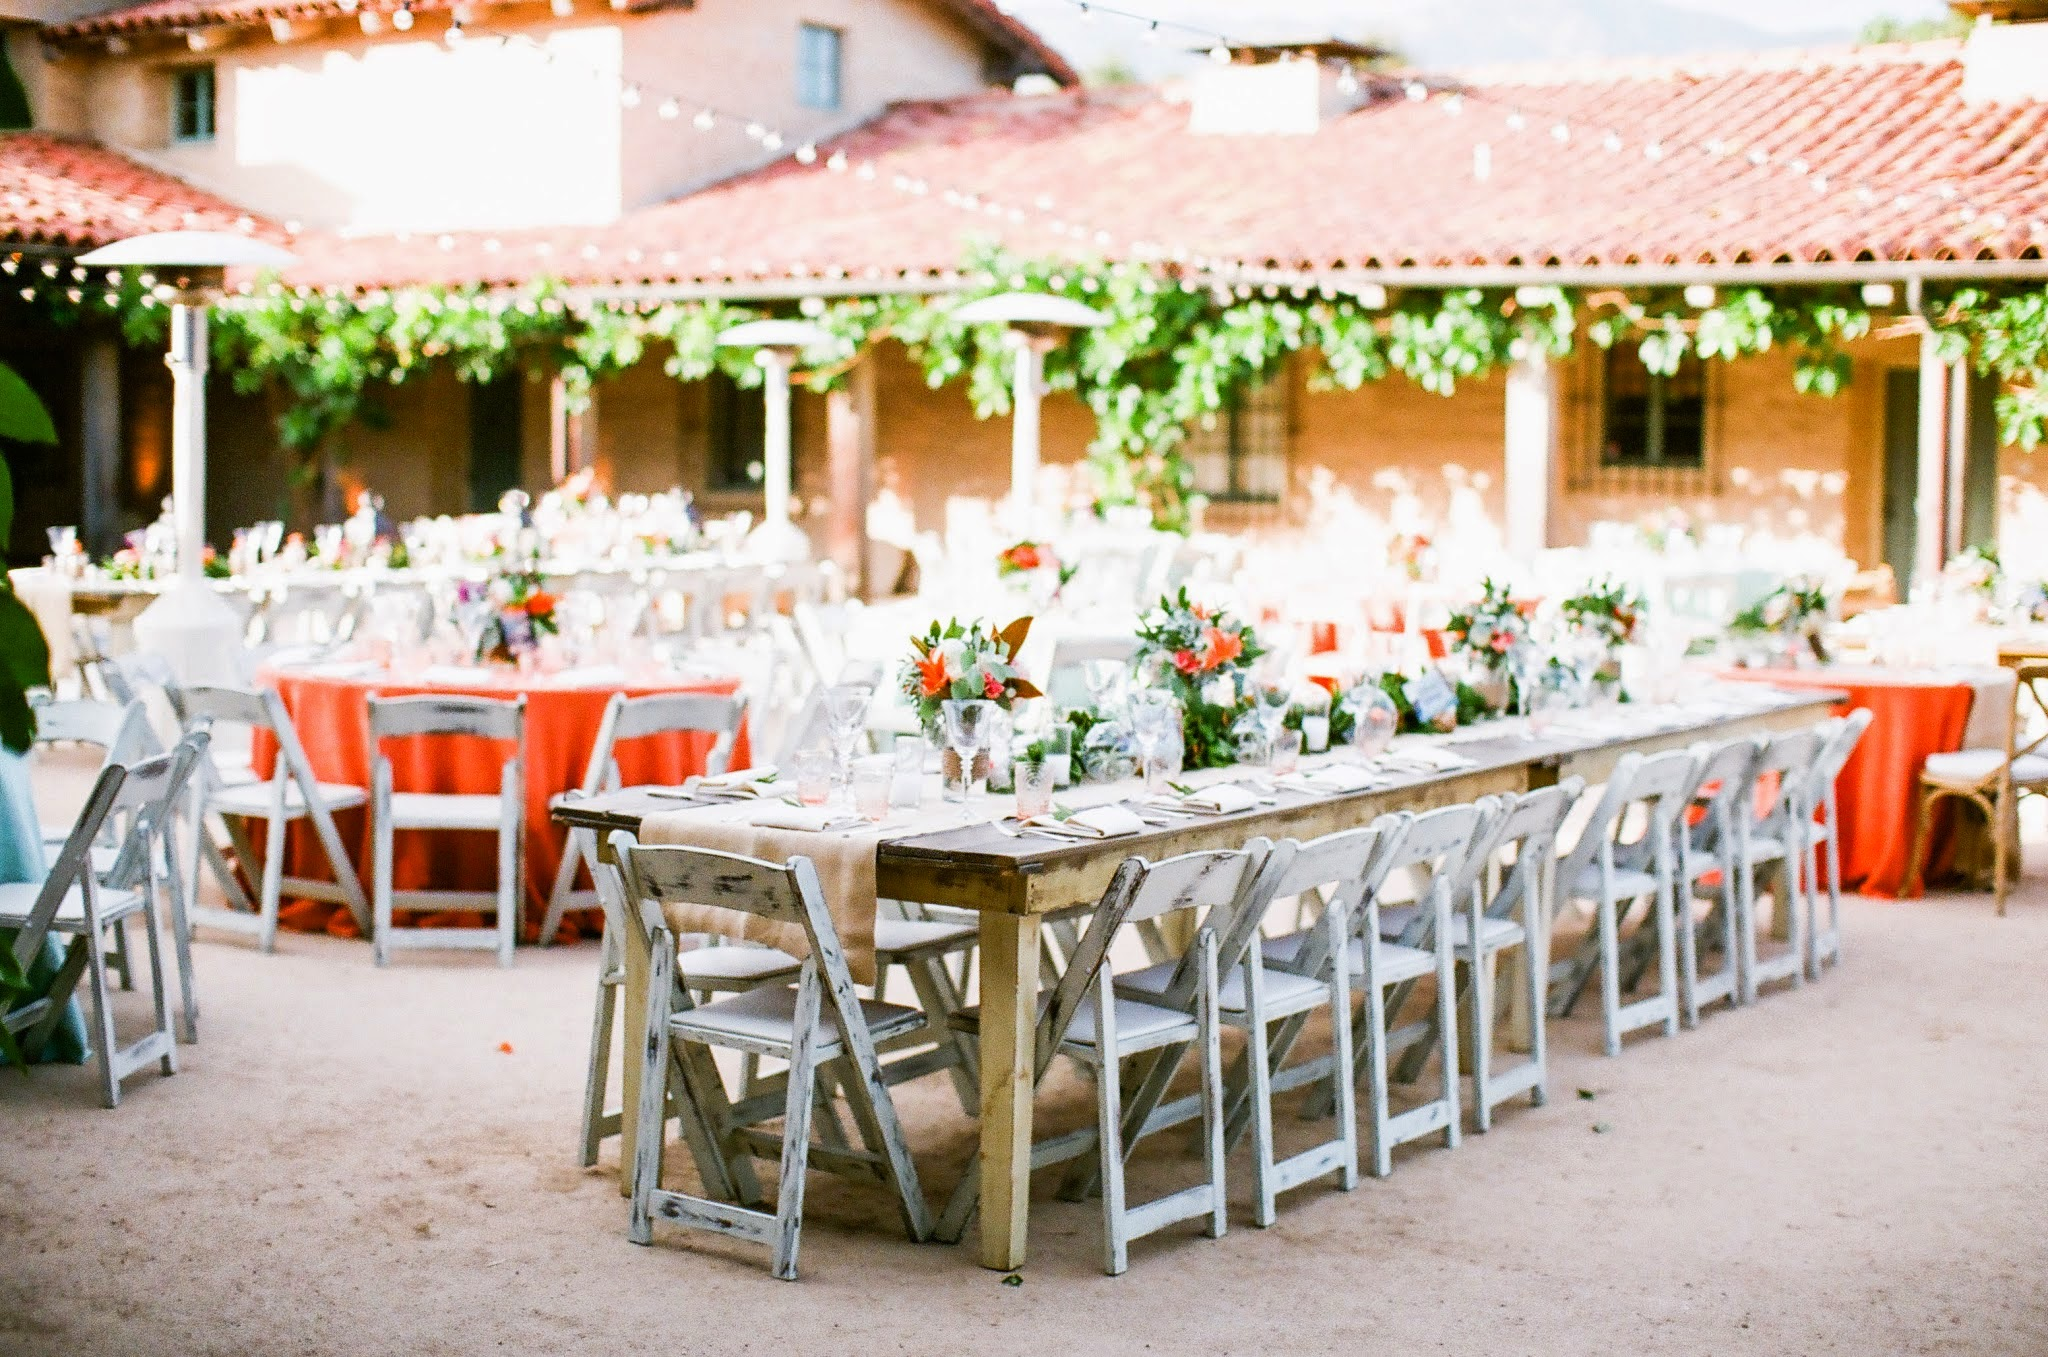 www.felicievents.com | Felici Events | Historical Museum Wedding | Eclectic Orange Wedding | Feasting Tables